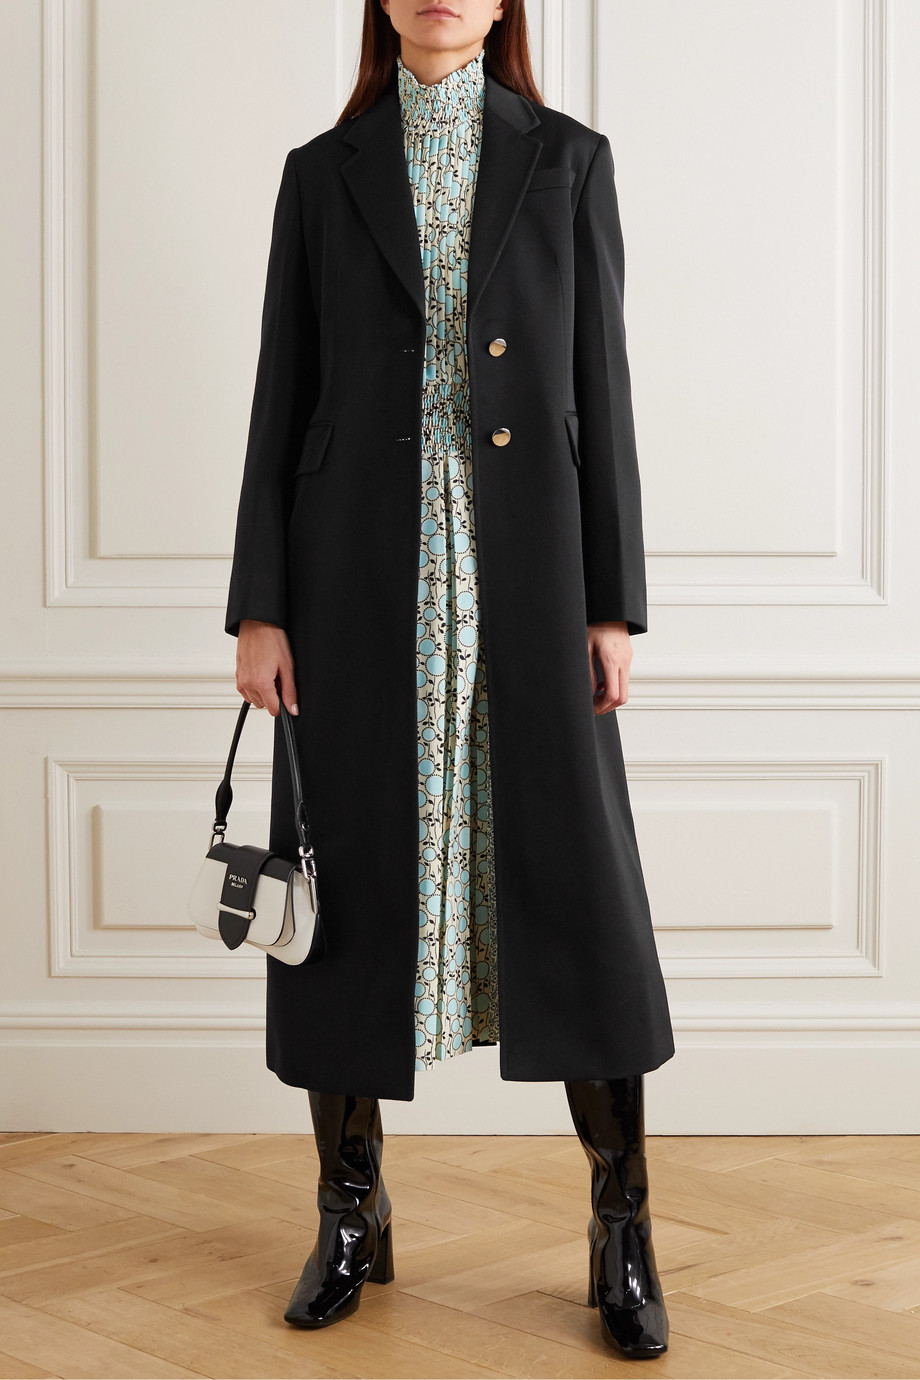 Prada Wool coat